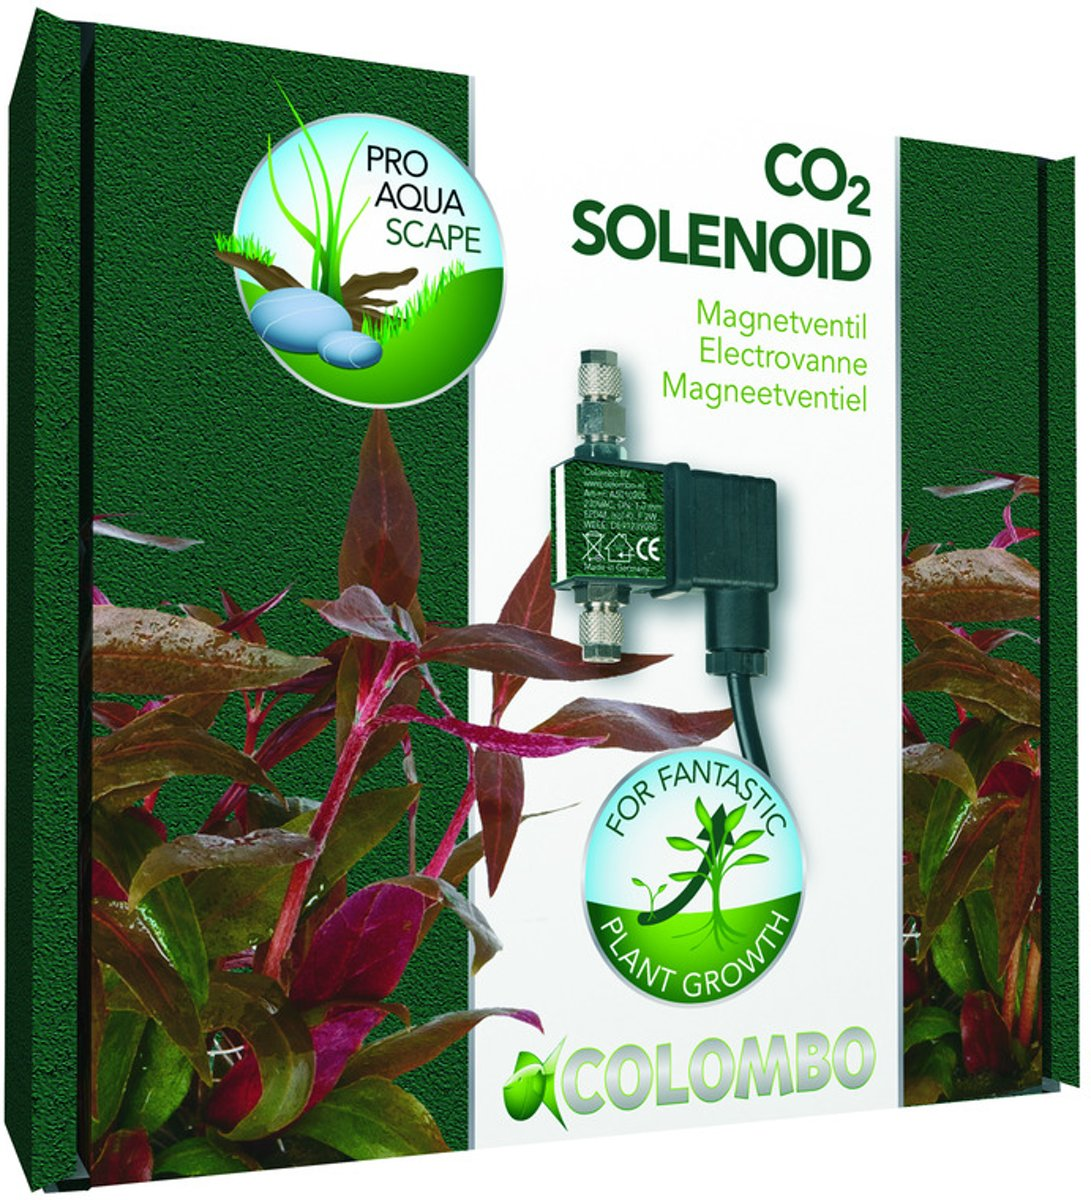 Colombo CO2 Advance Magneetventiel kopen